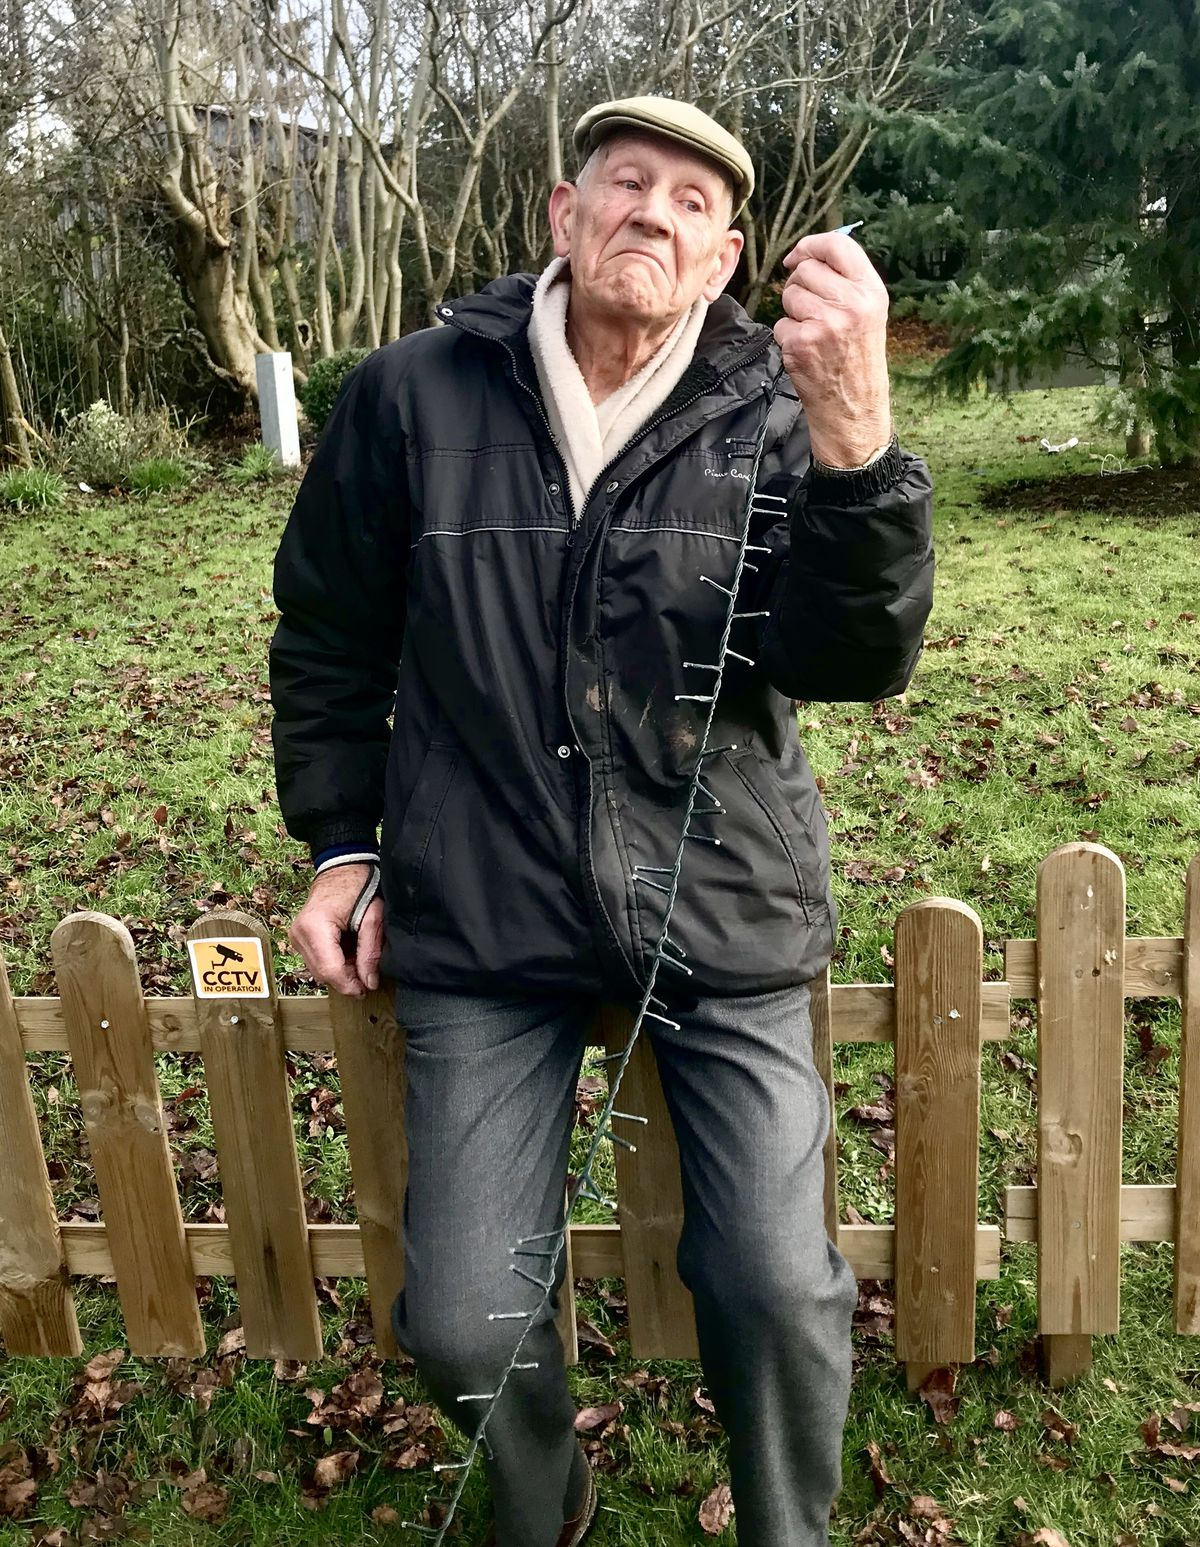 Peter Young, 79, organiser of the Sheriffhales Christmas display, heartbroken over the theft